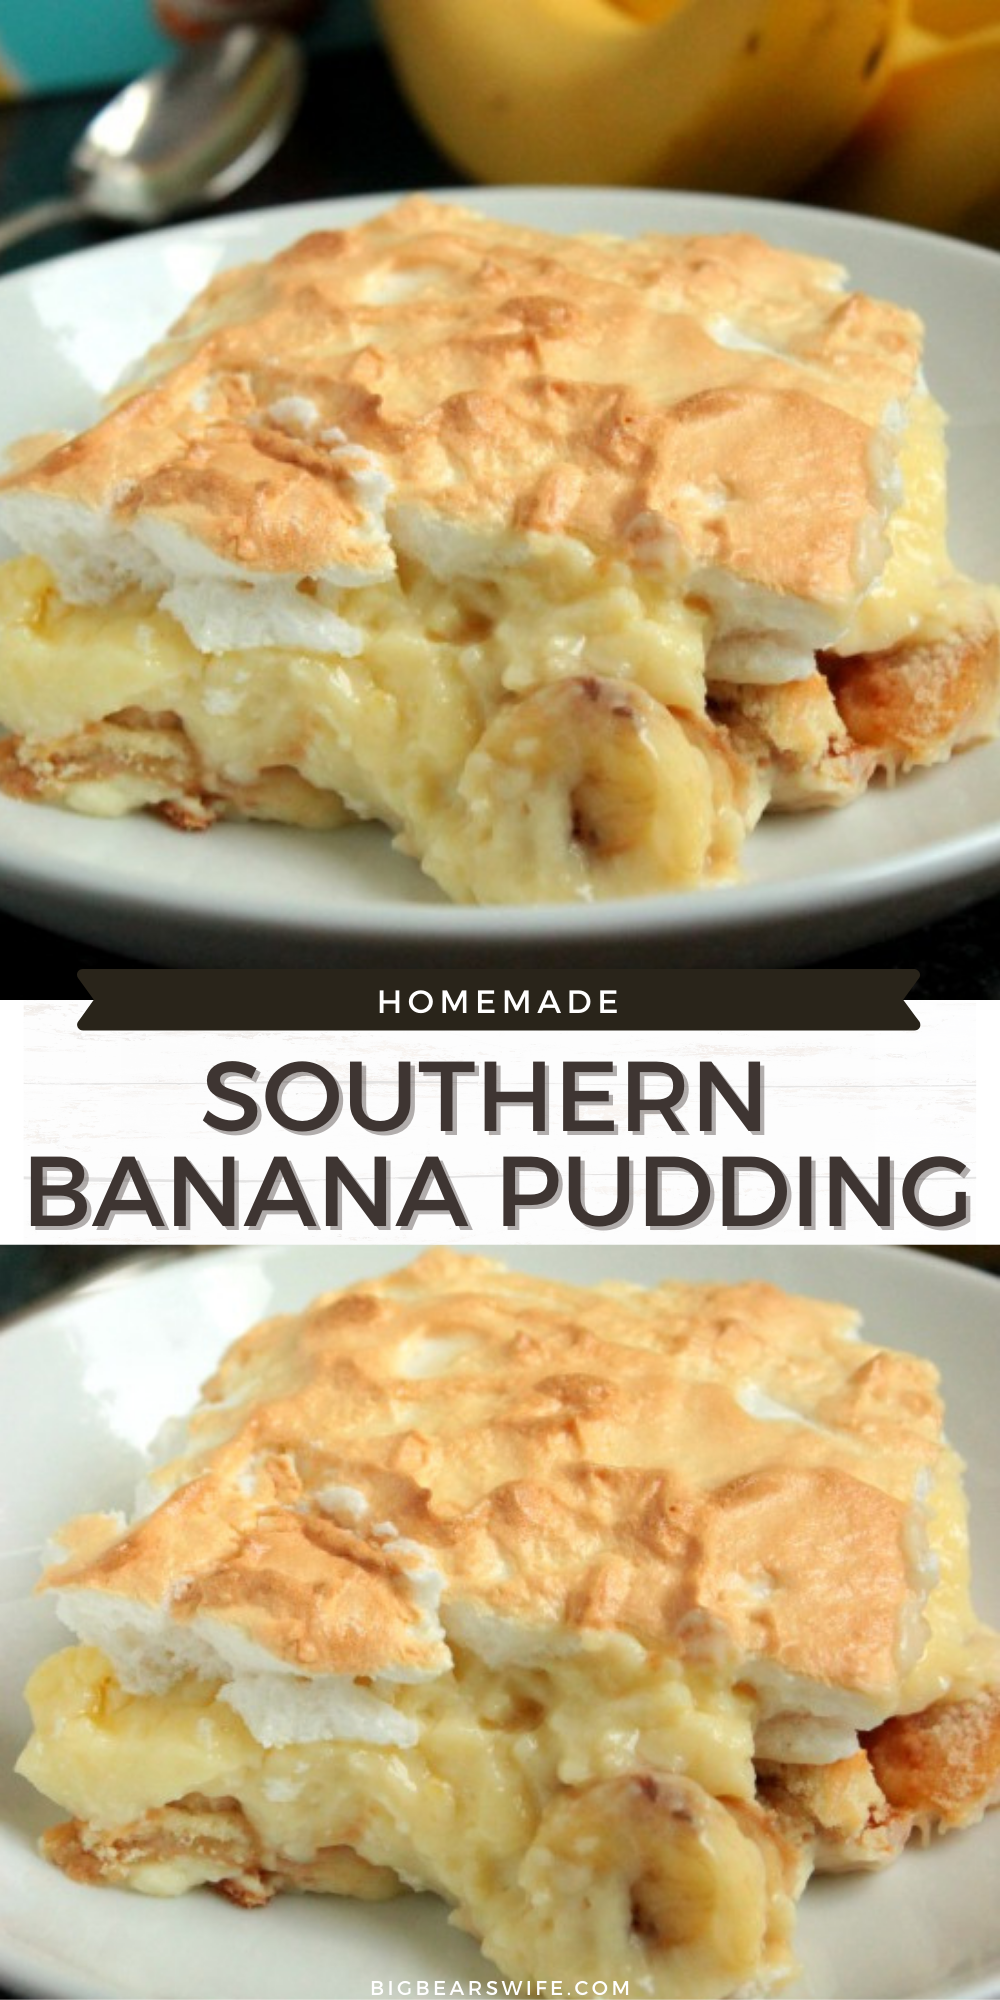 Serve is hot or cold, this Homemade Southern Banana Pudding is going to be loved by all! Roasting the banana gives it a richer banana flavor too! via @bigbearswife